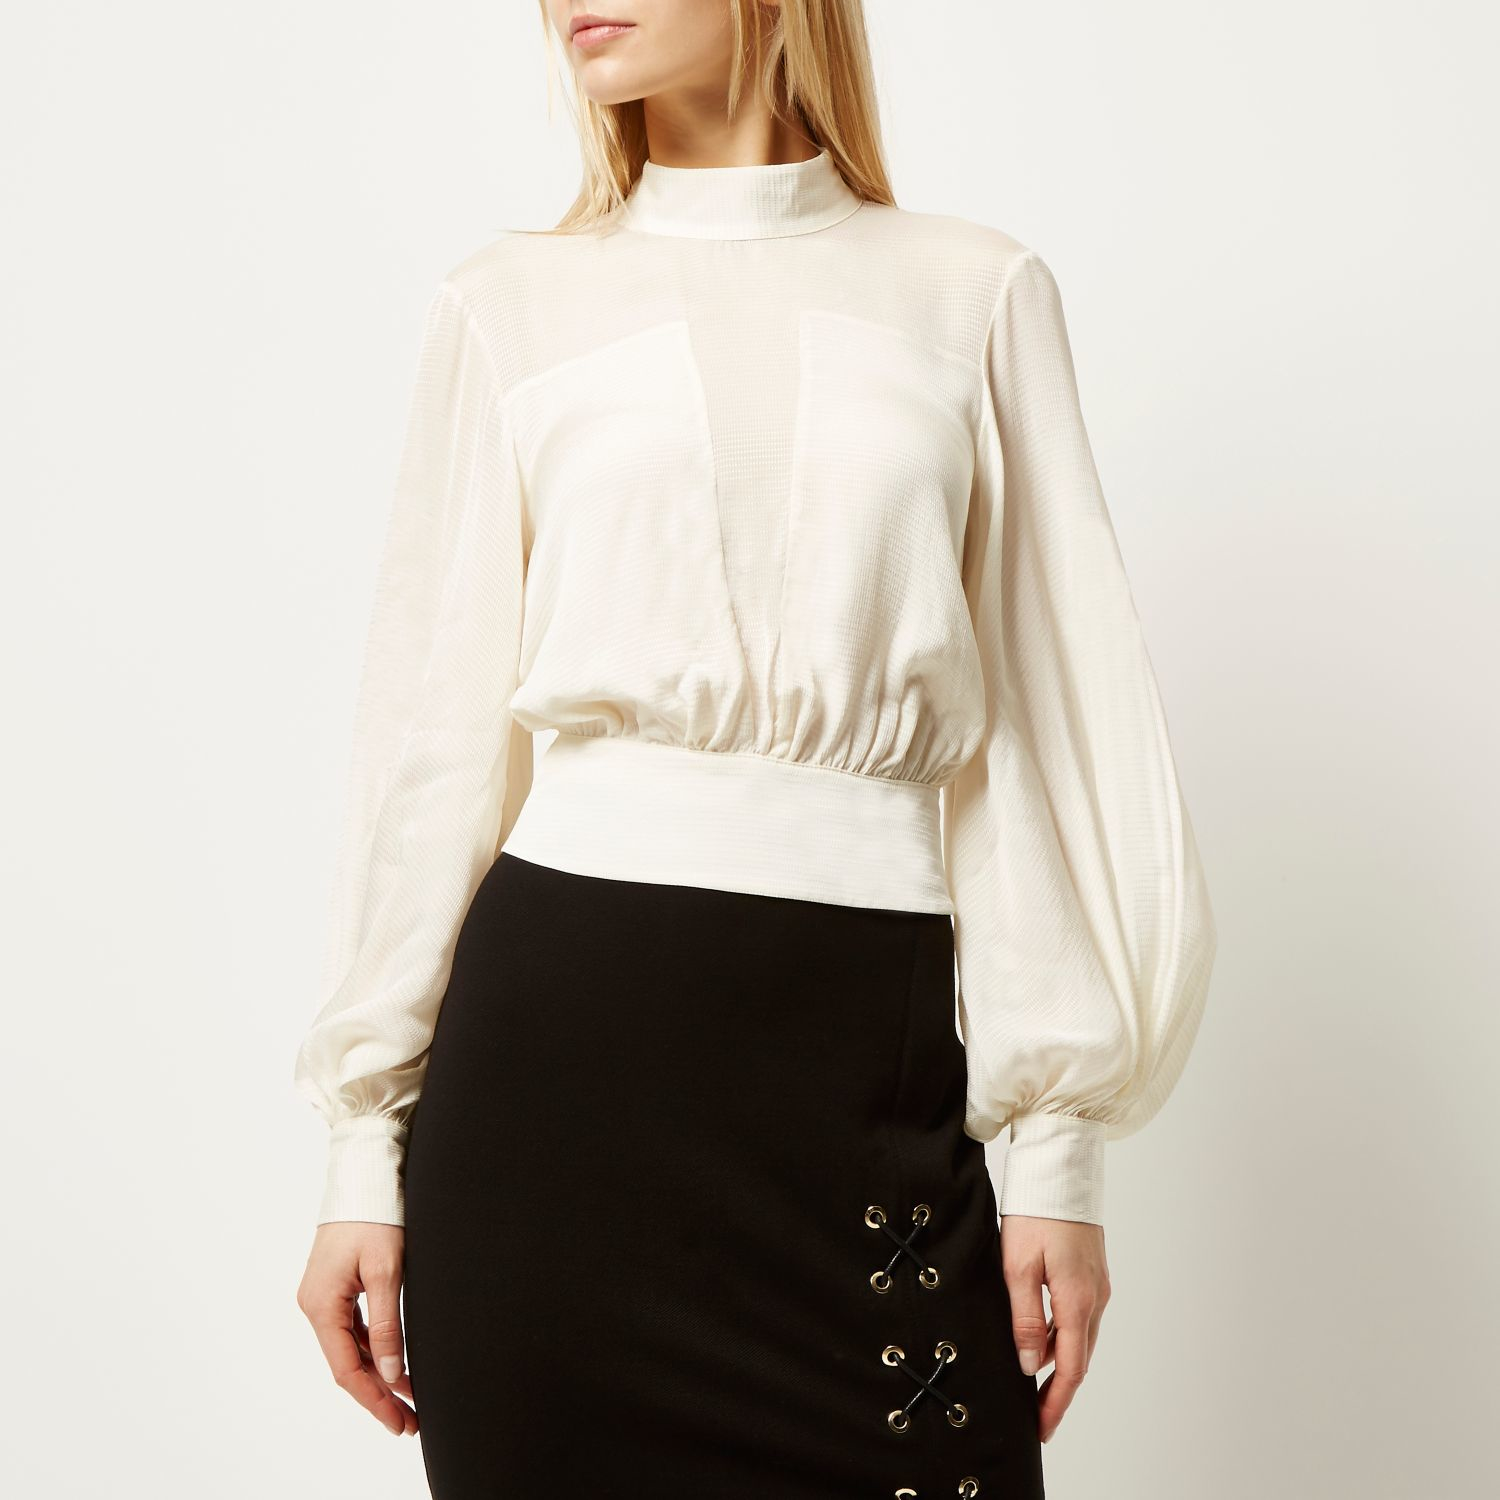 Stand Neck Blouse Designs : High neck cream blouse black dressy blouses